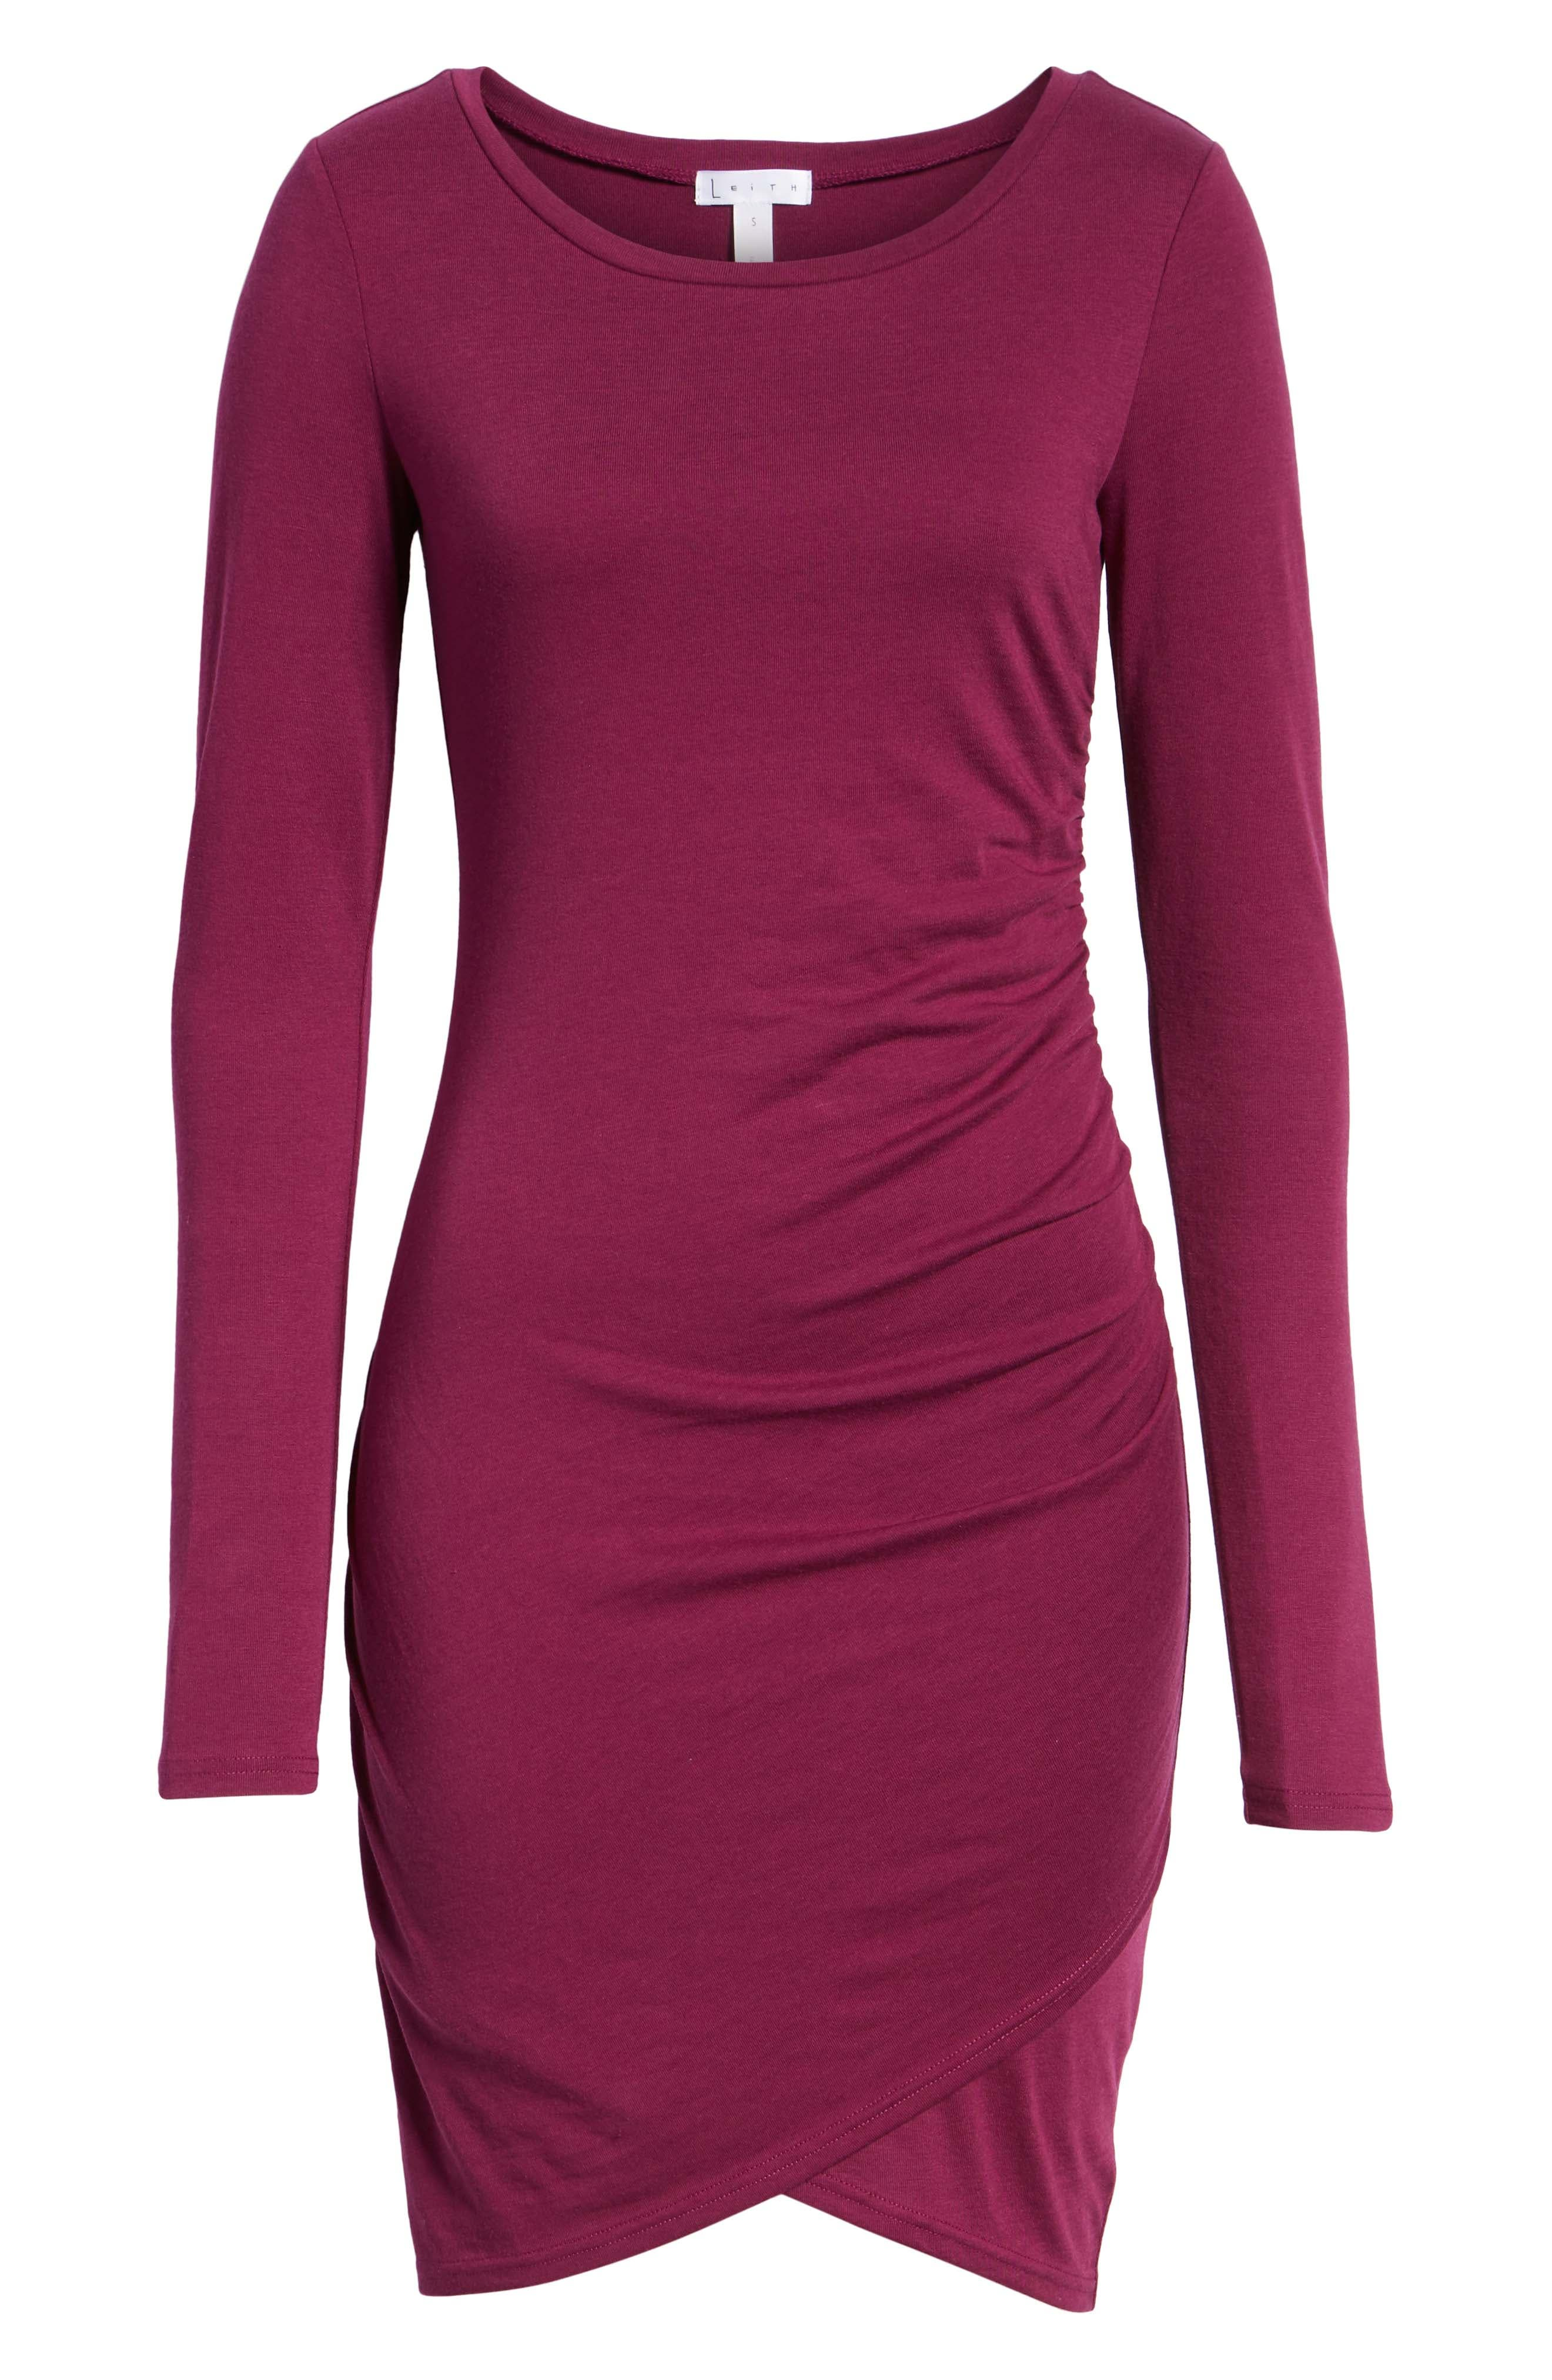 Ruched Long Sleeve Dress,                             Alternate thumbnail 7, color,                             PURPLE MAGENTA